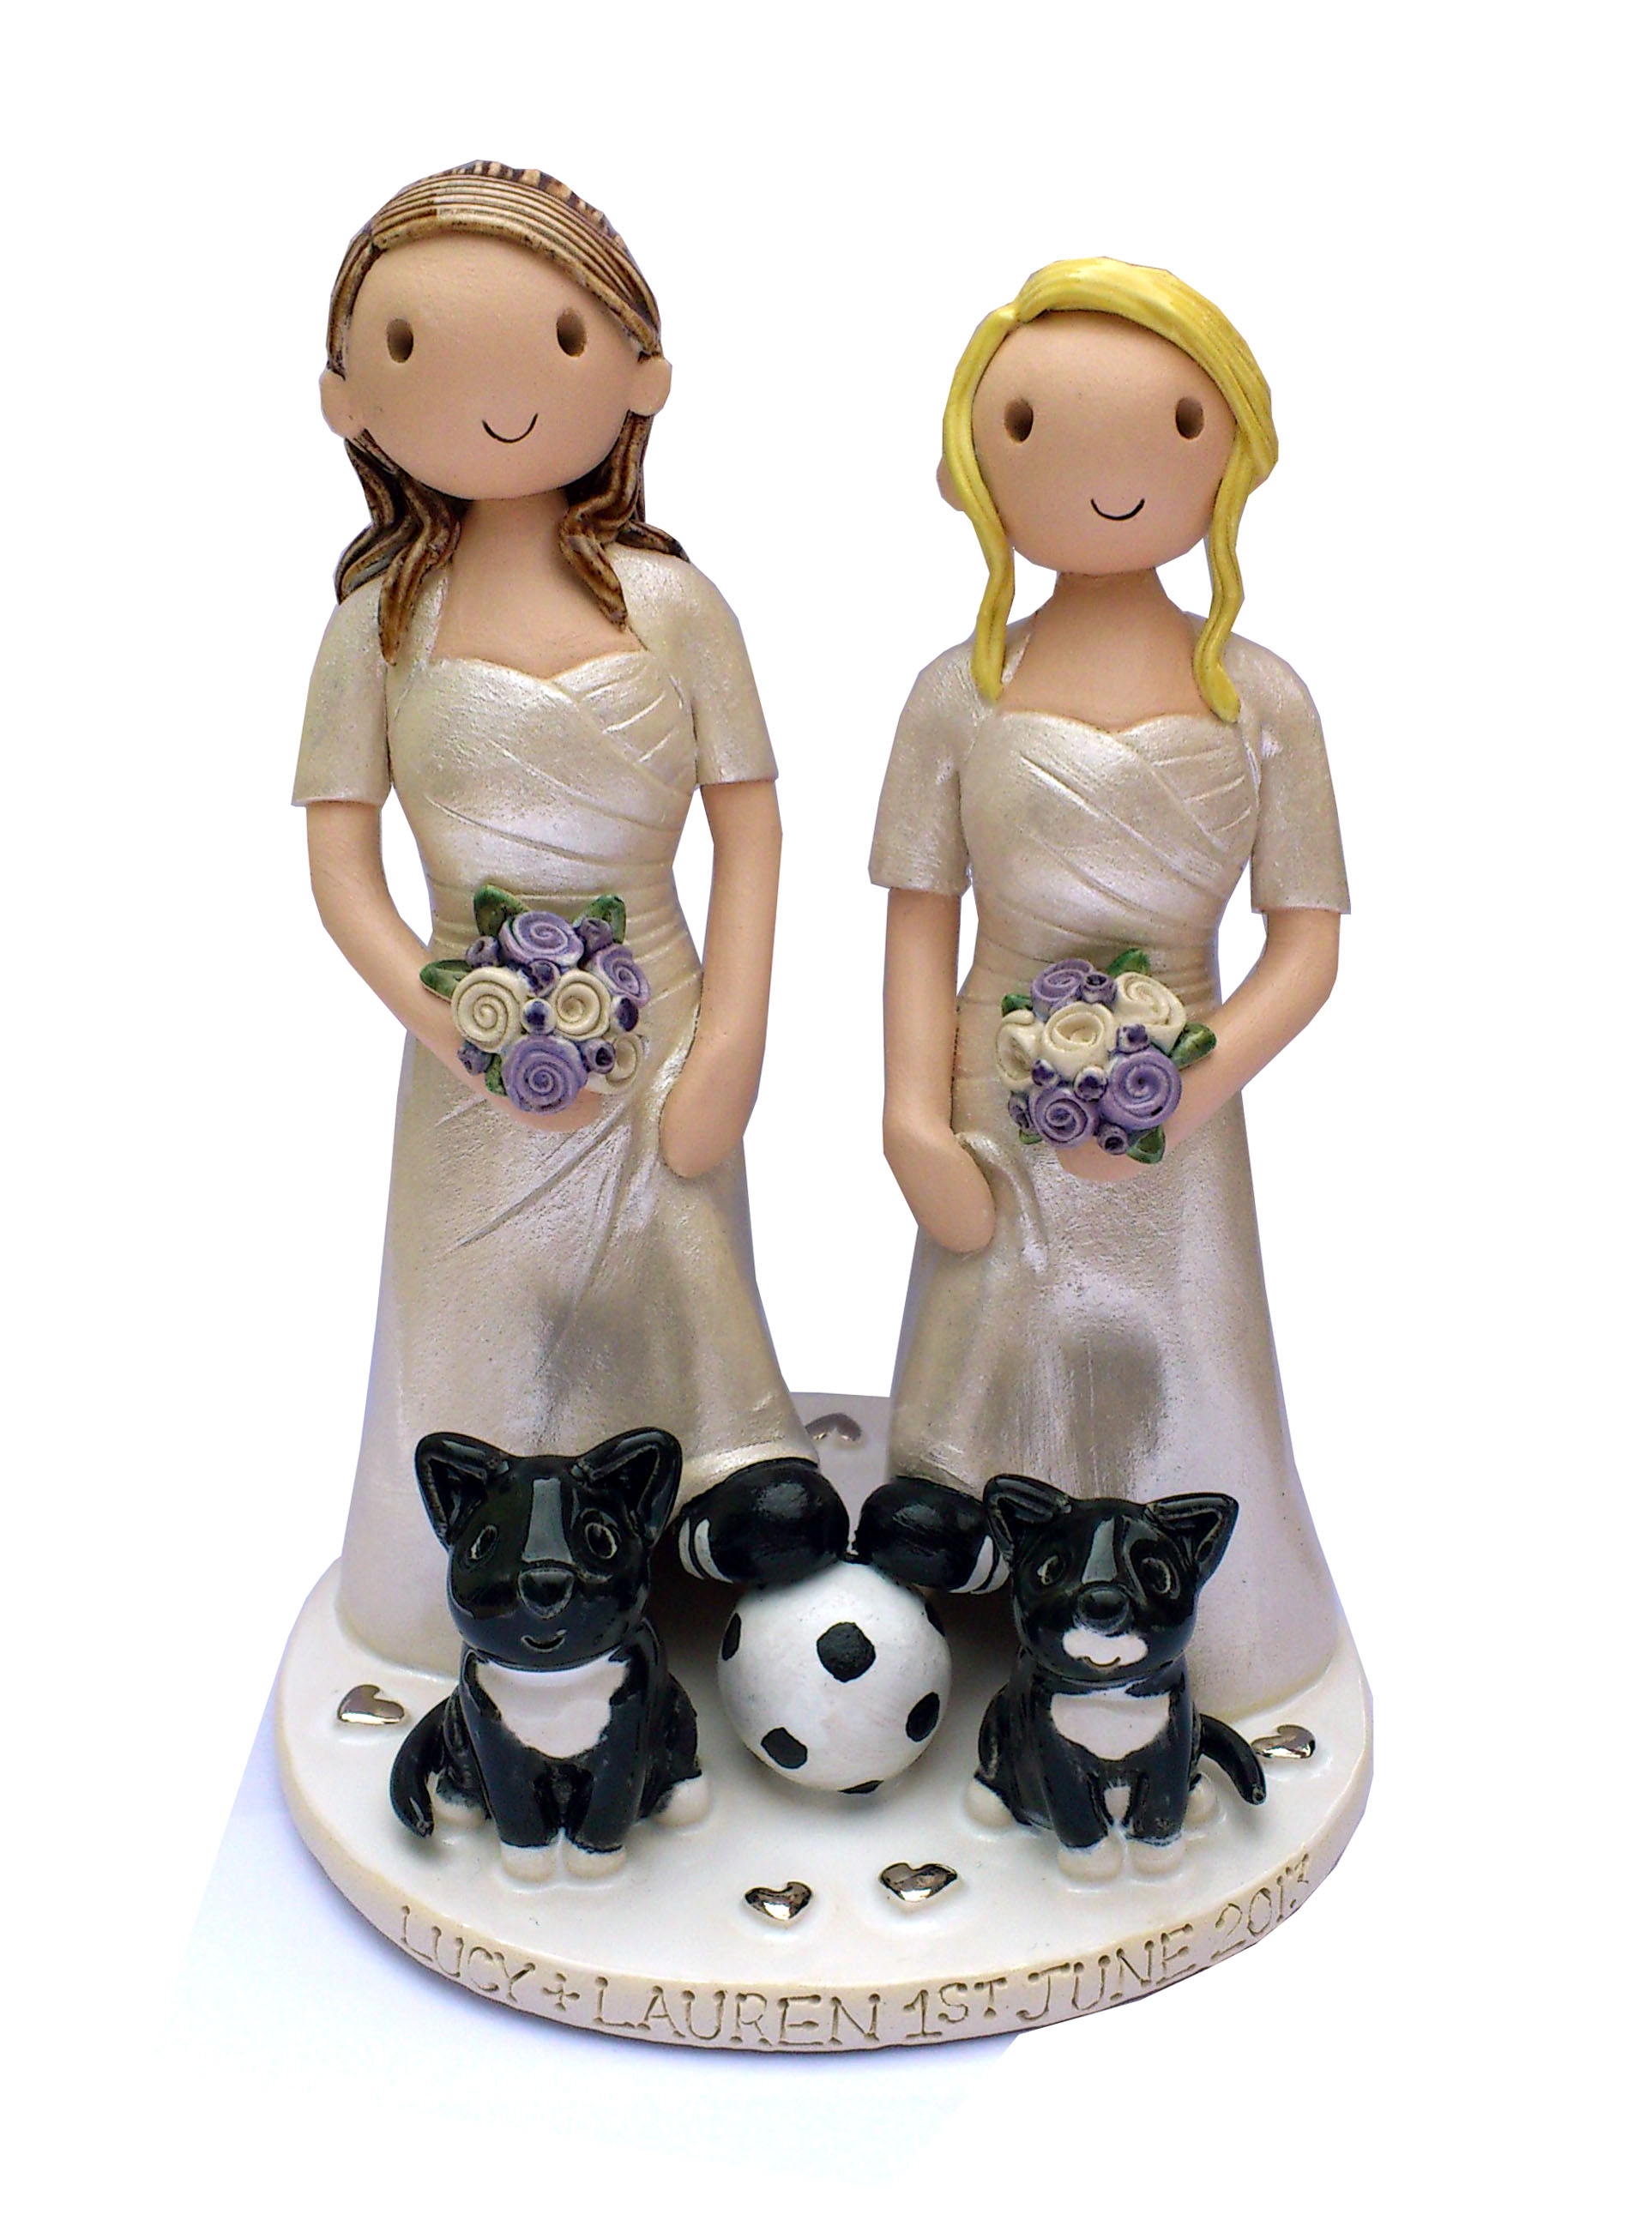 Cake Toppers In Uk : Wedding Cake Toppers Gallery. Examples Of Toppers We Have ...